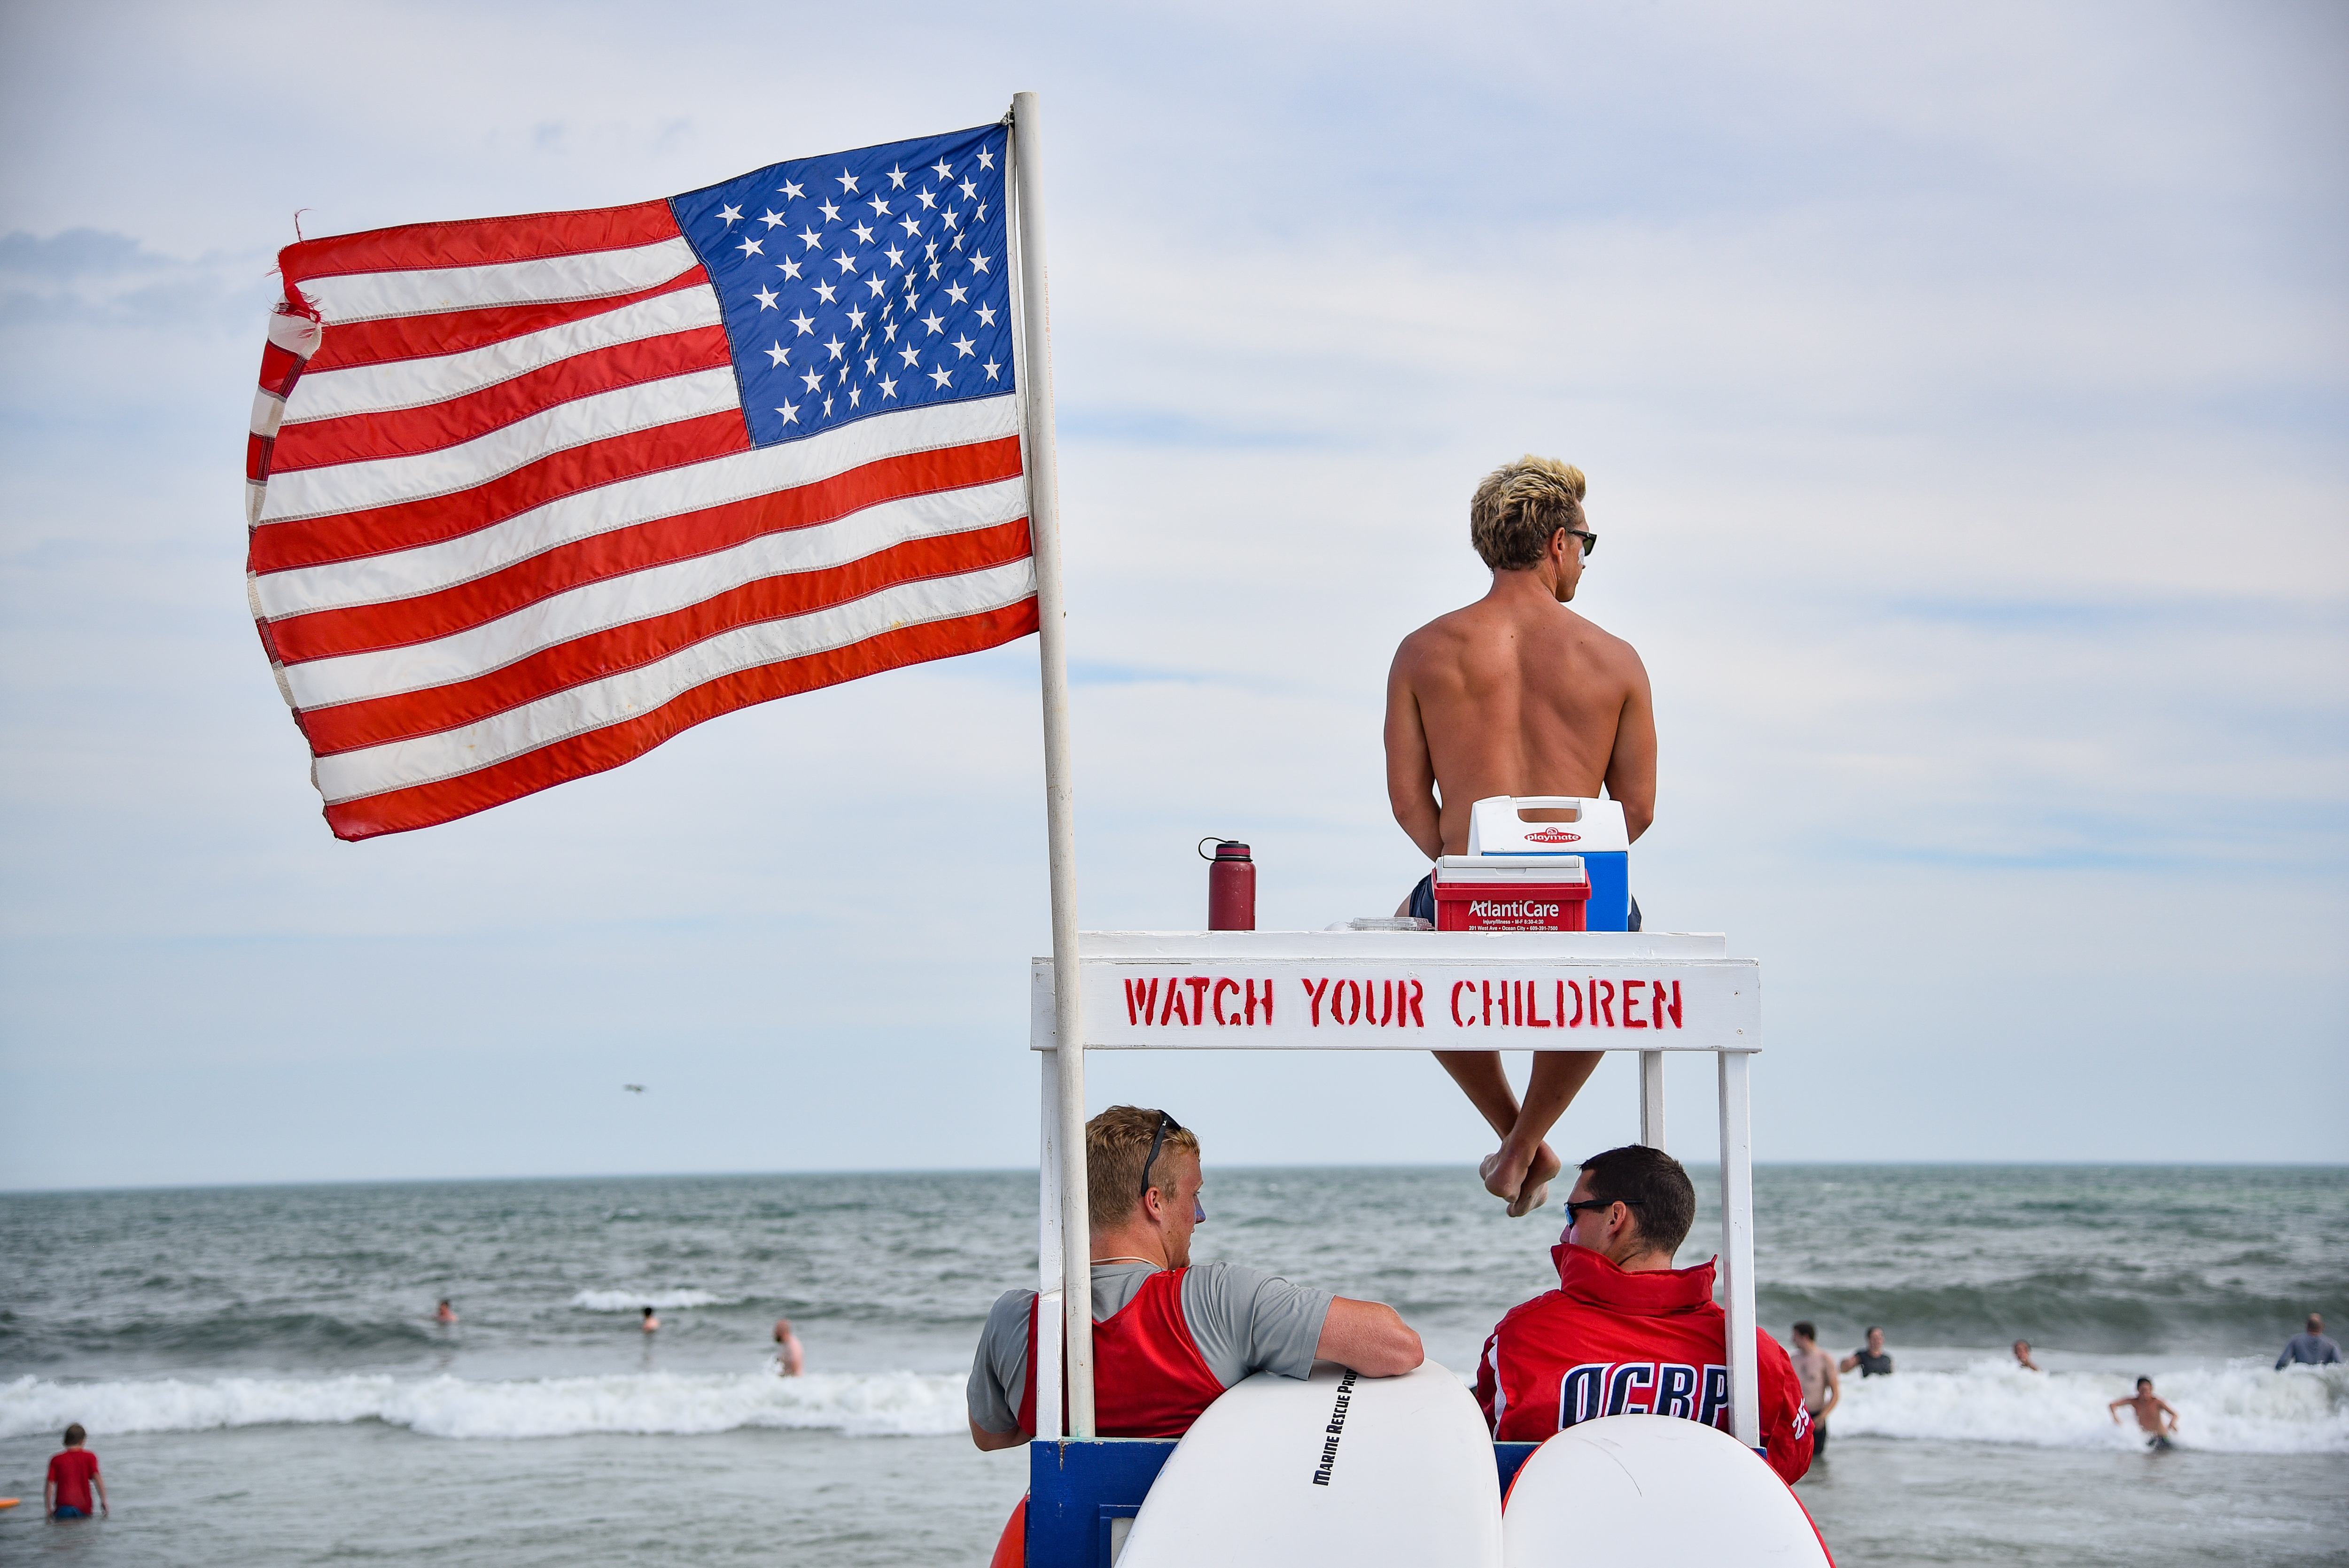 All N.J. veterans and active military could get free beach access soon. One town is back to allowing it.